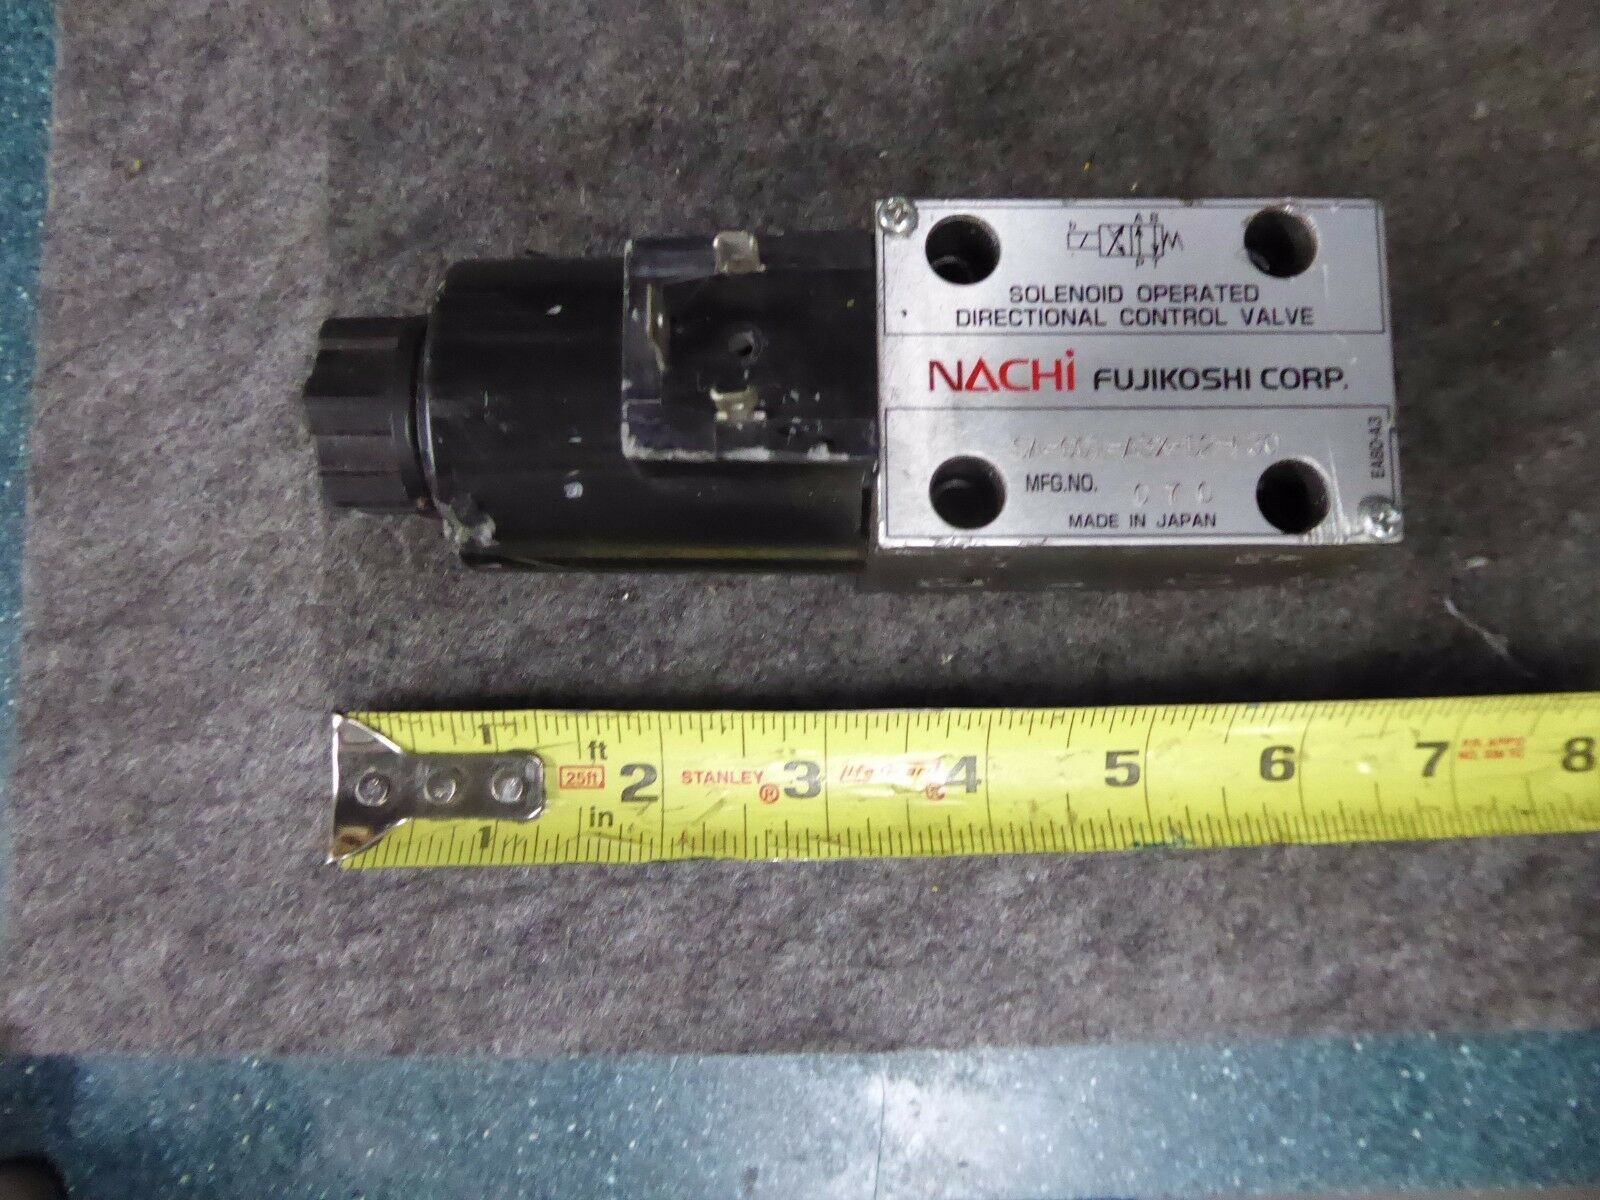 Nachi SA-G01-A3X-D2-E30 Solenoid Operated Directional Control Valve